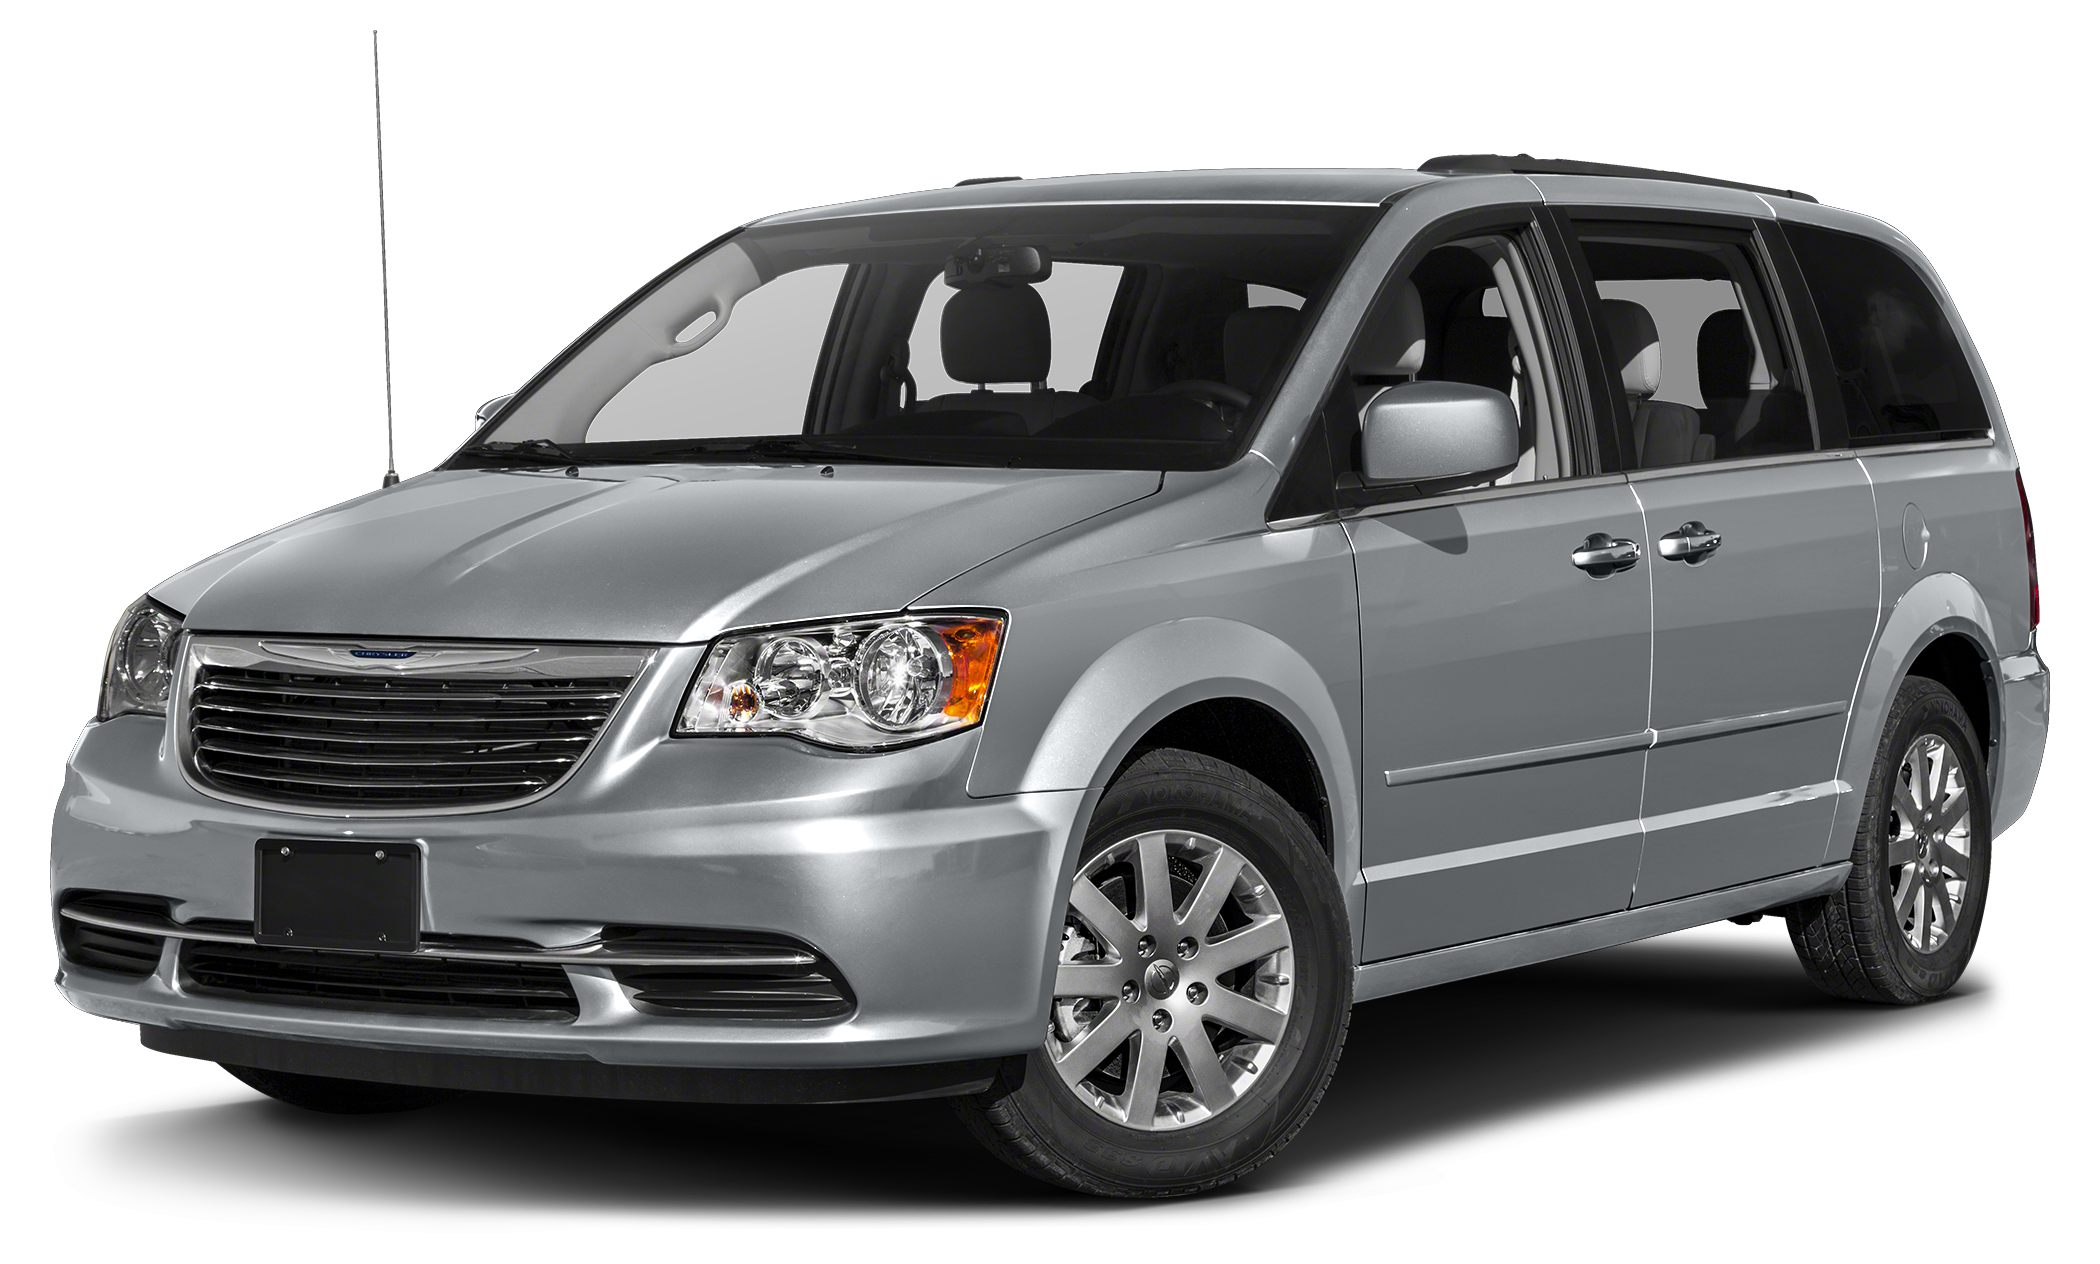 2016 Chrysler Town  Country Touring WE SELL OUR VEHICLES AT WHOLESALE PRICES AND STAND BEHIND OUR